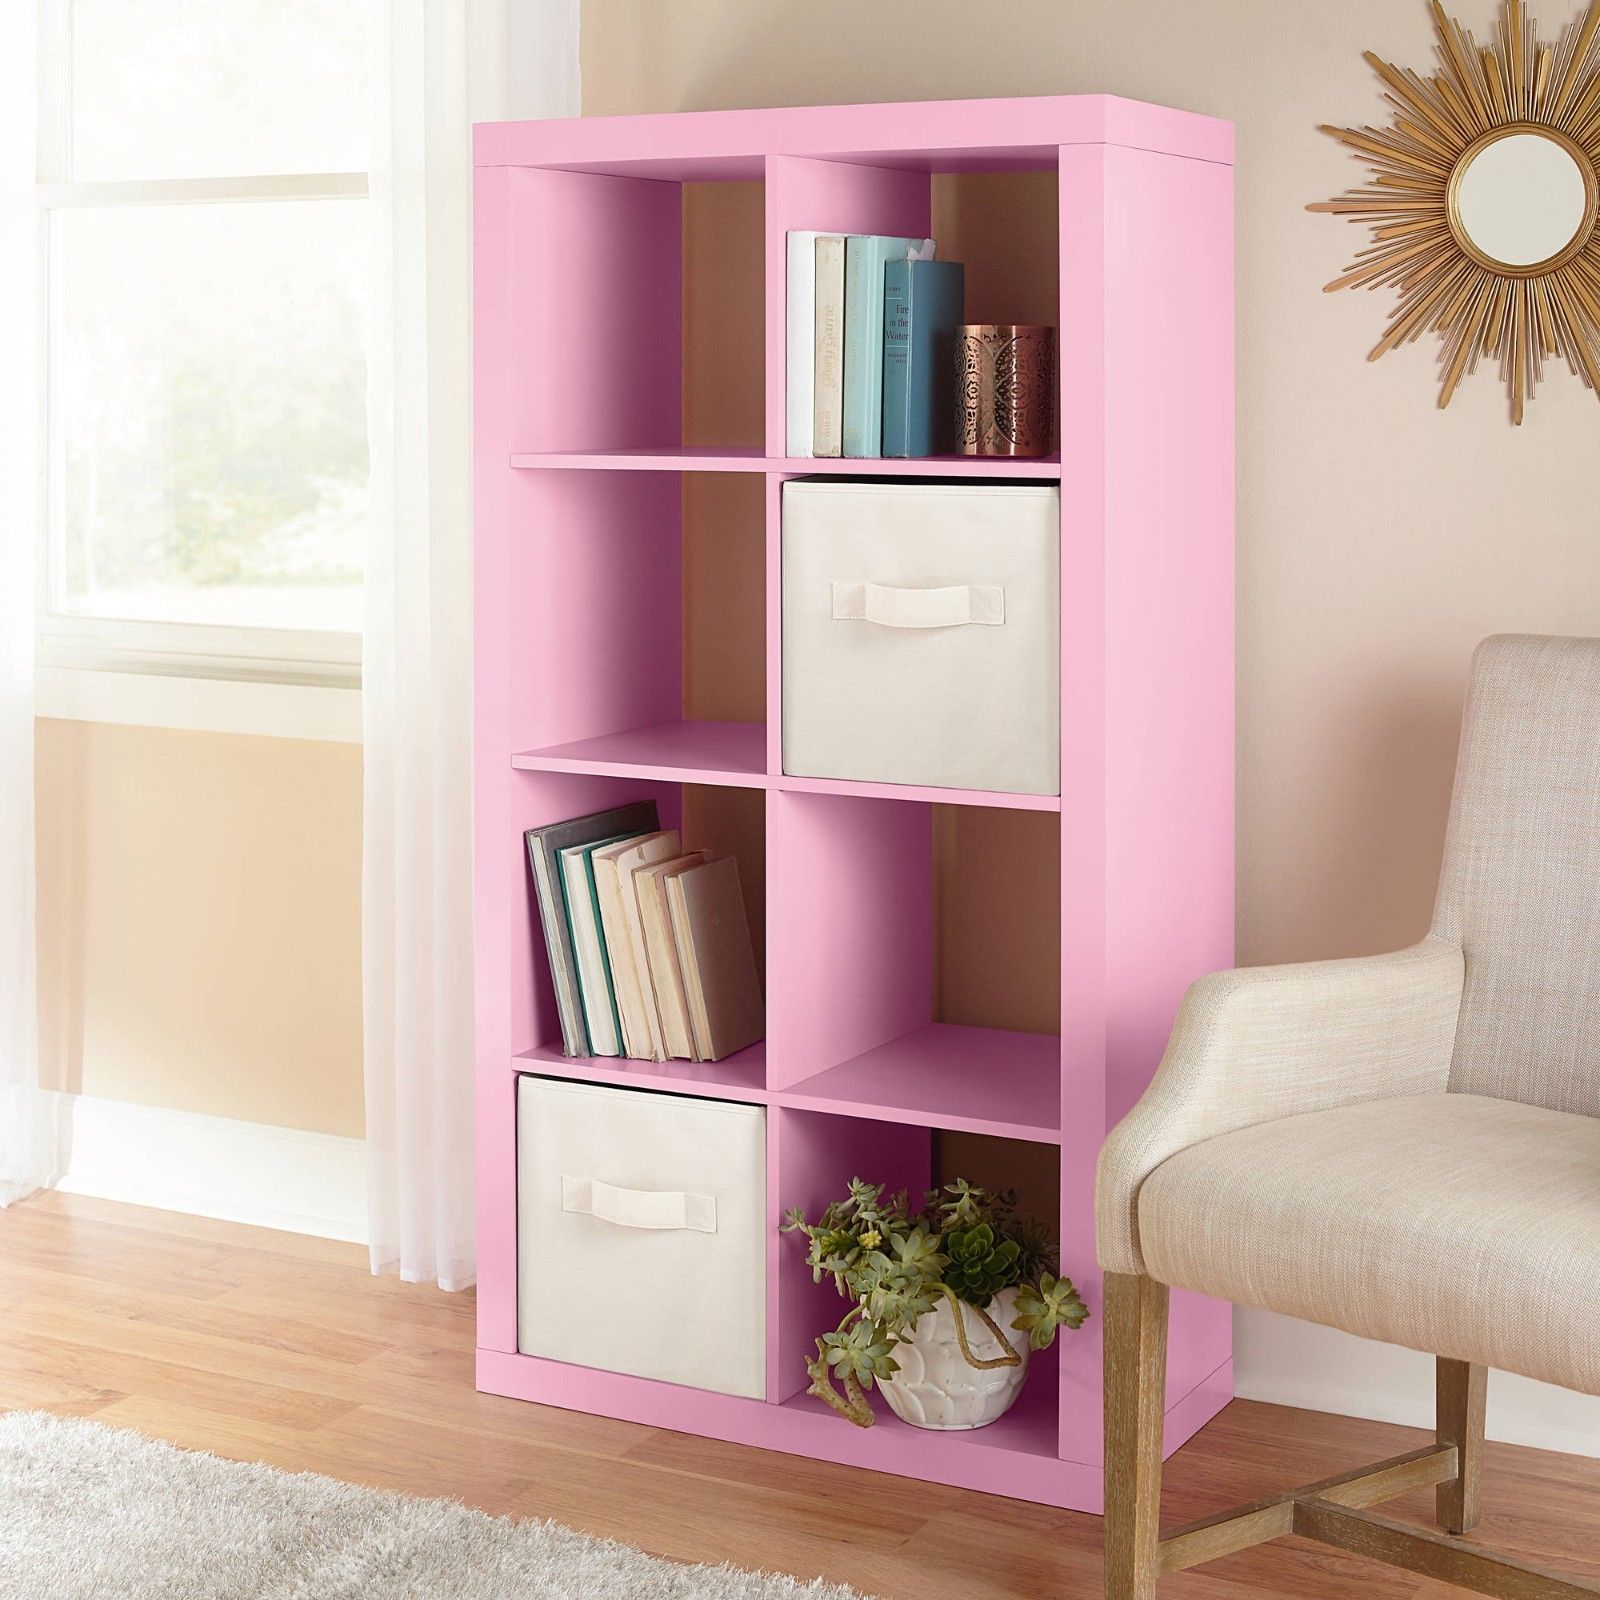 Better Homes and Gardens 8-Cube Organizer Pink